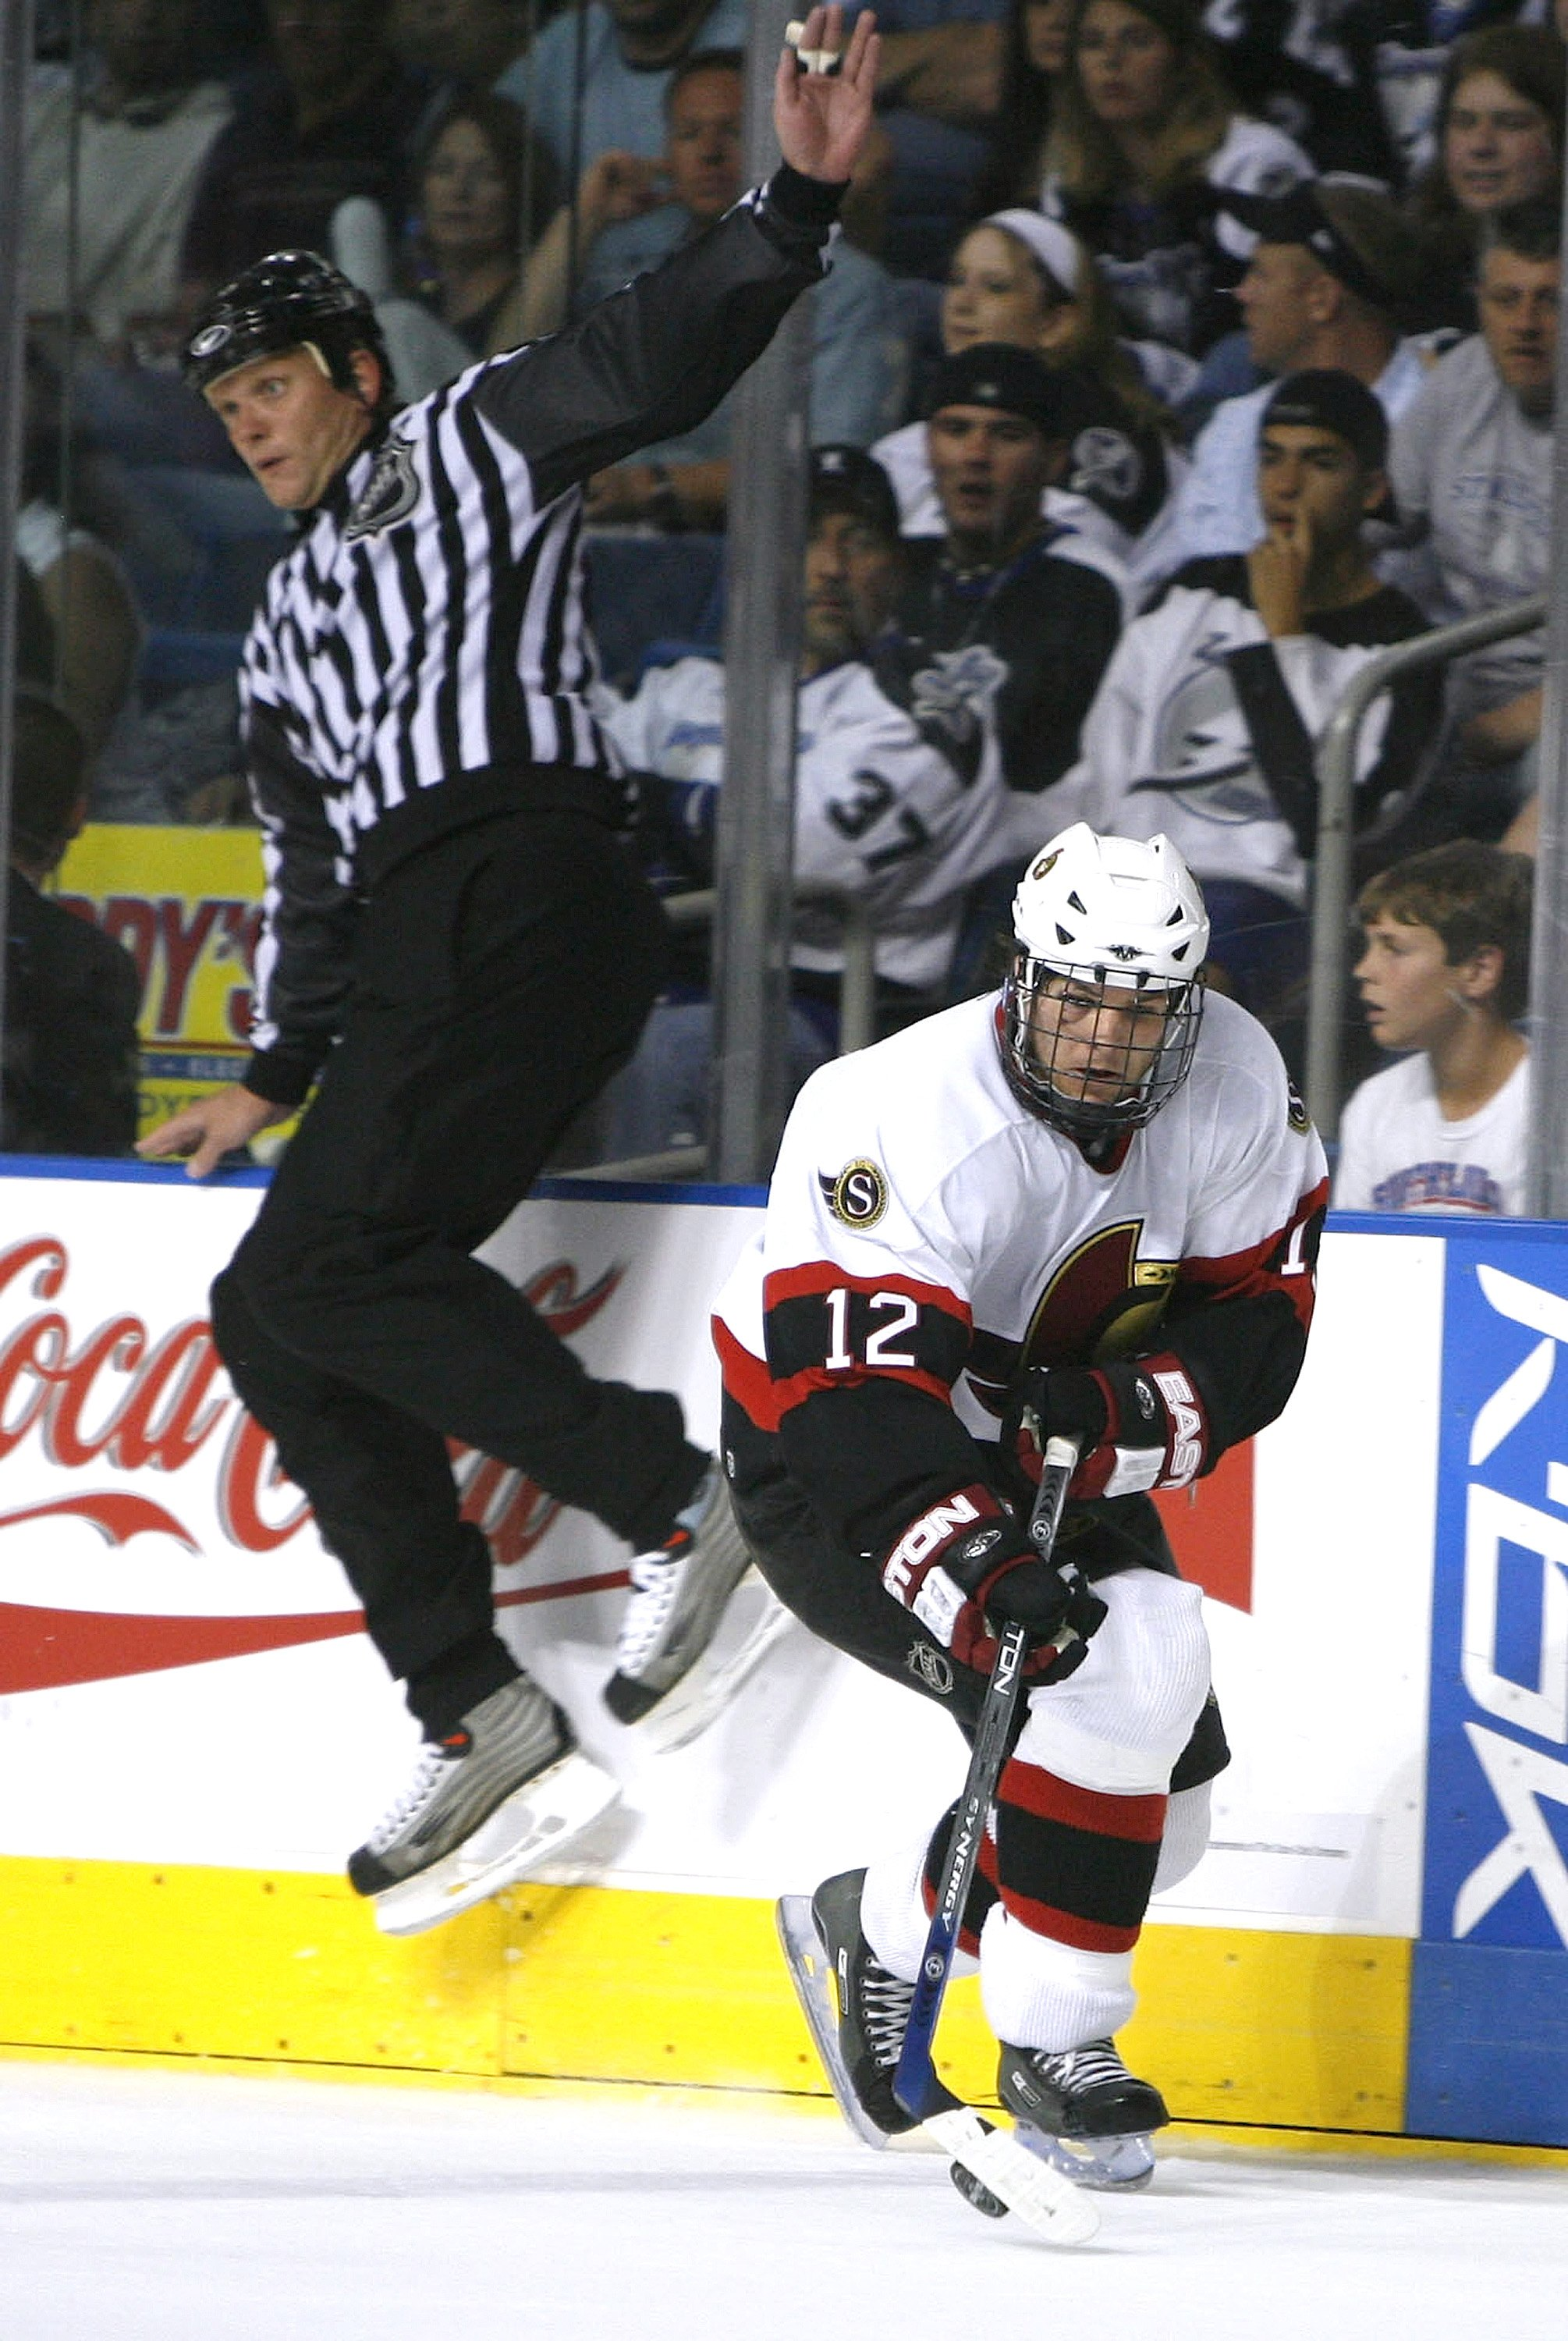 TAMPA, FL - APRIL 27: Linesmen Tim Nowak jumps out of the way of Mike Fisher #12 of the Ottawa Senators as he skates down ice against the Tampa Bay Lightning in the third period during game four round one of the Eastern Conference 2006 NHL Stanley Cup Playoffs at the St. Pete Times Forum on April 27, 2006 in Tampa, Florida. (Photo by Eliot J. Schechter/Getty Images)